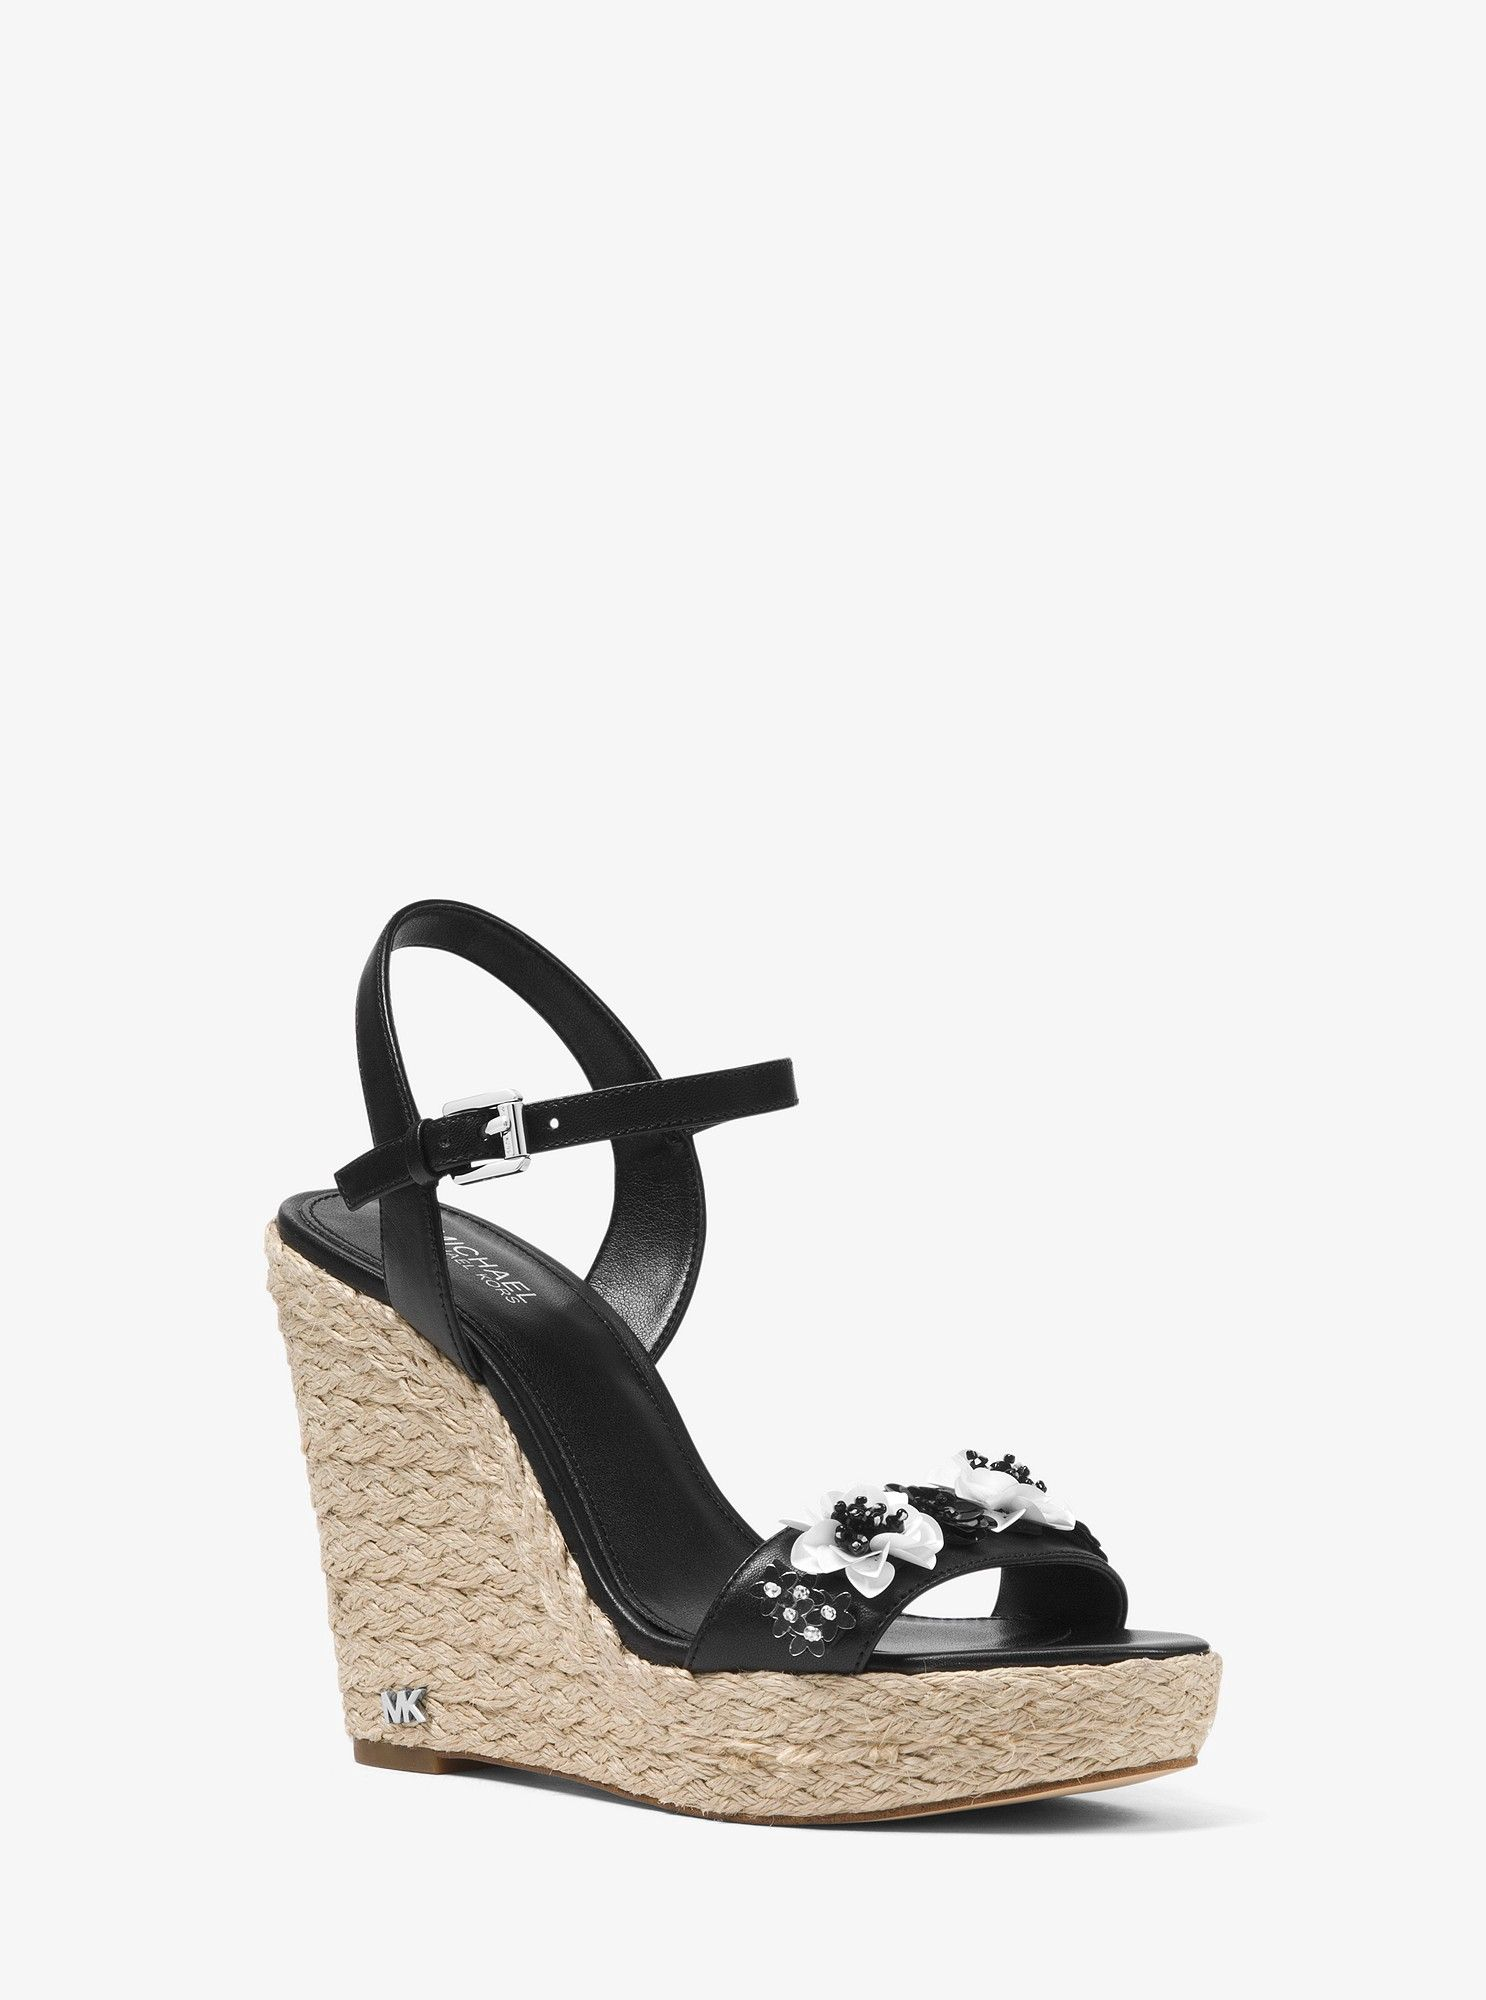 62130c94744b Jill Floral Sequined Leather Wedge by Michael Kors in 2018 ...